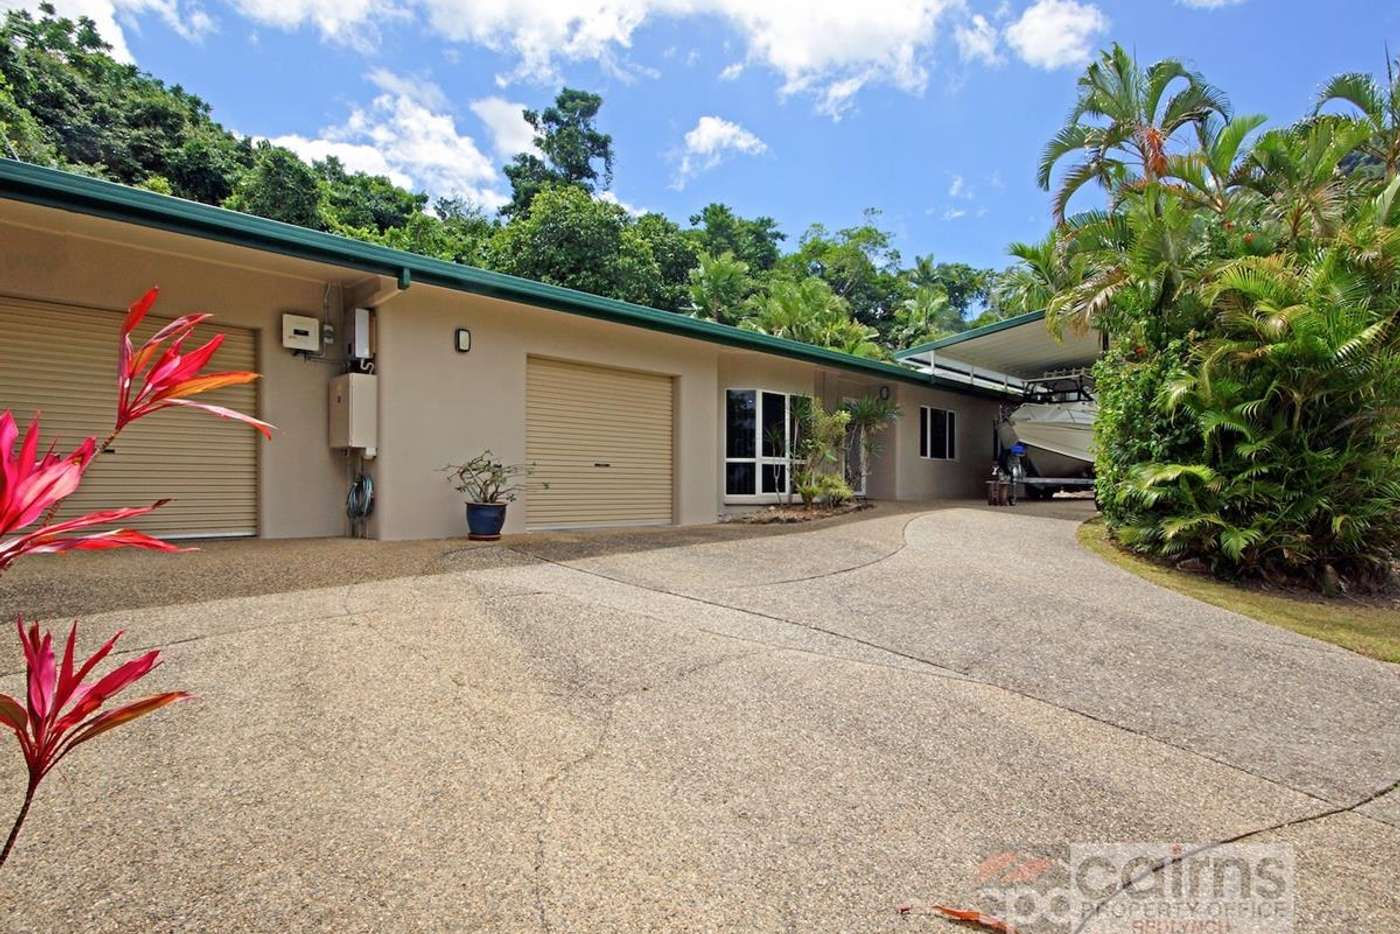 Main view of Homely house listing, 115 Hobson Drive, Brinsmead QLD 4870